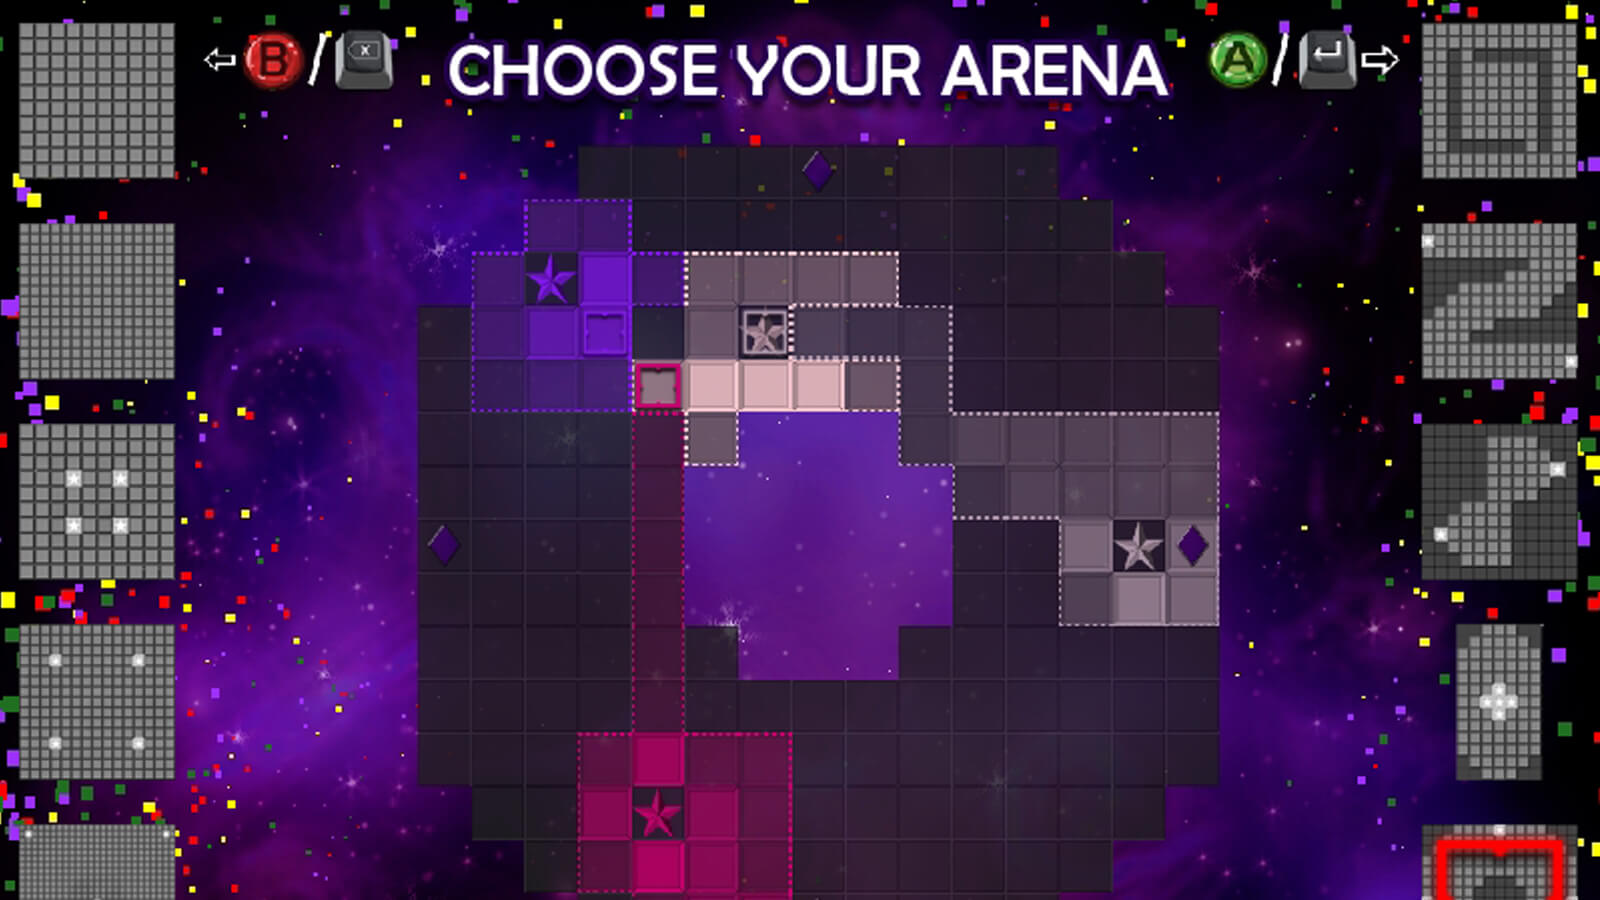 Pink, purple, and grey squares compete for grid space.